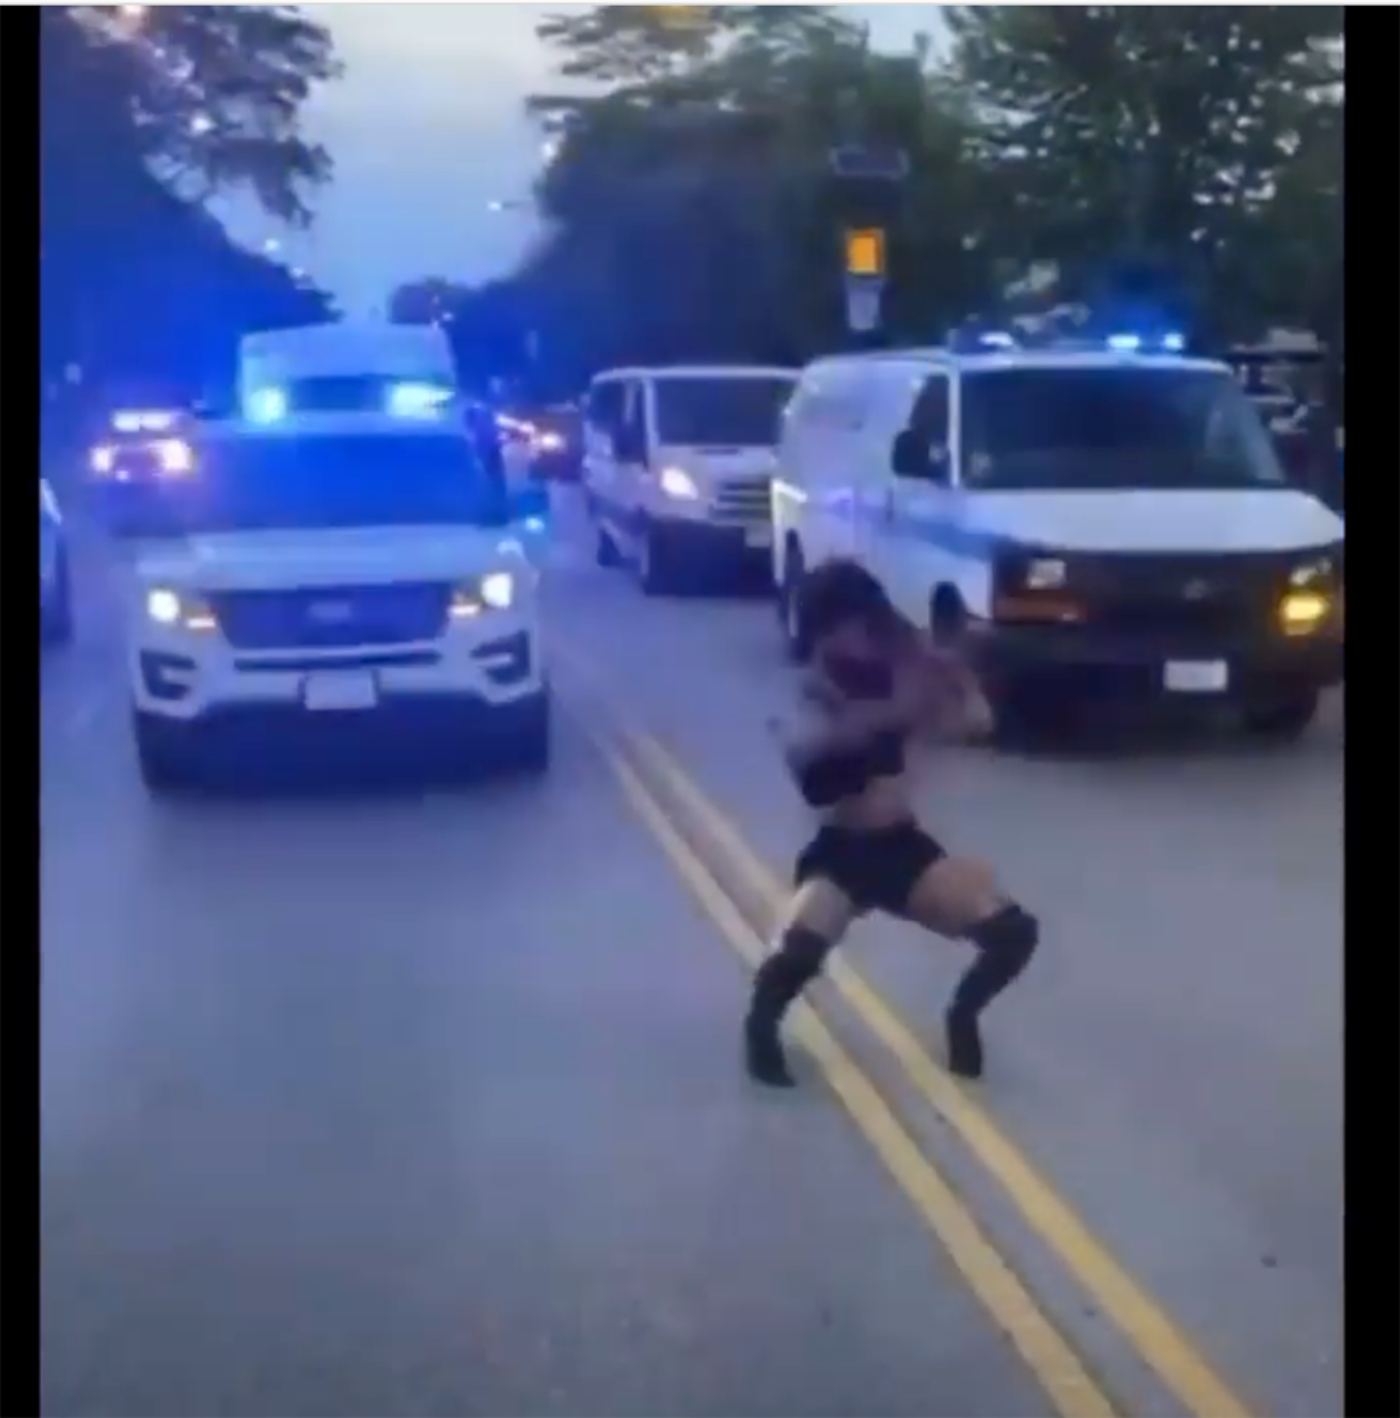 A Black woman in long black boots, shorts, and a tank top dances in the middle of the road in front of several police vehicles with their lights on.